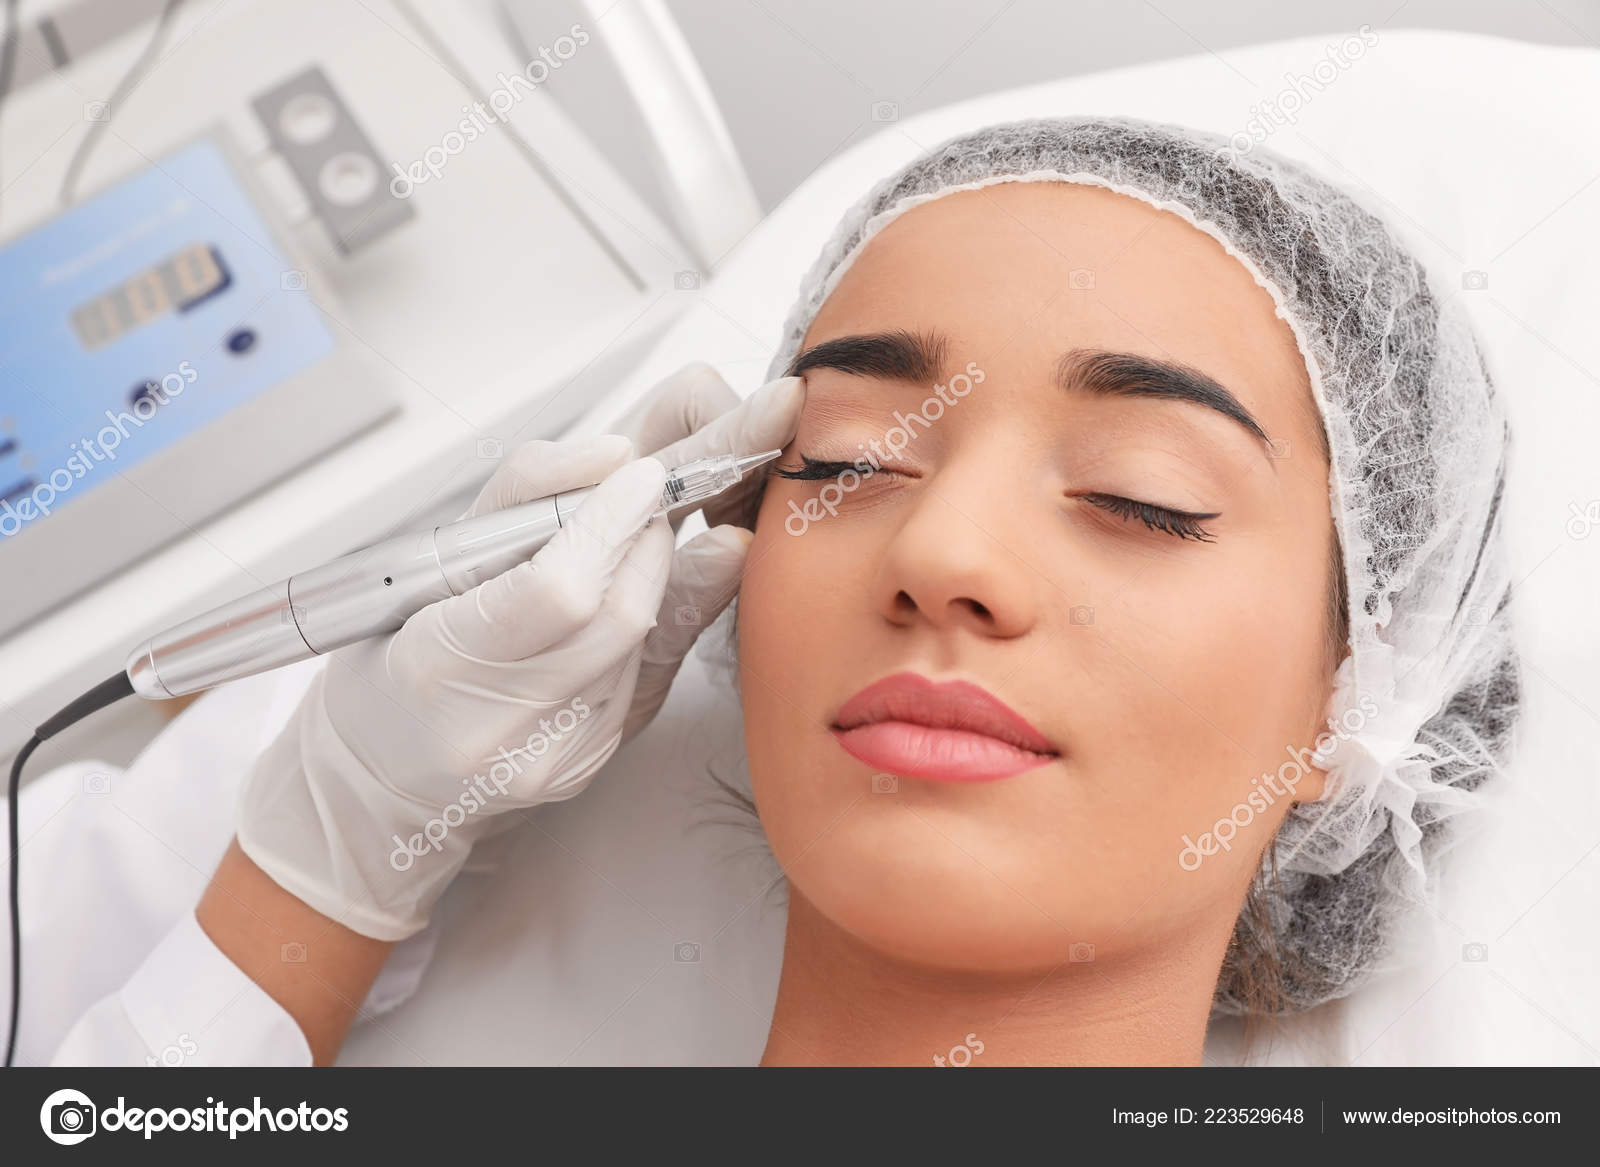 Young Woman Undergoing Procedure Permanent Eye Makeup Tattoo Salon